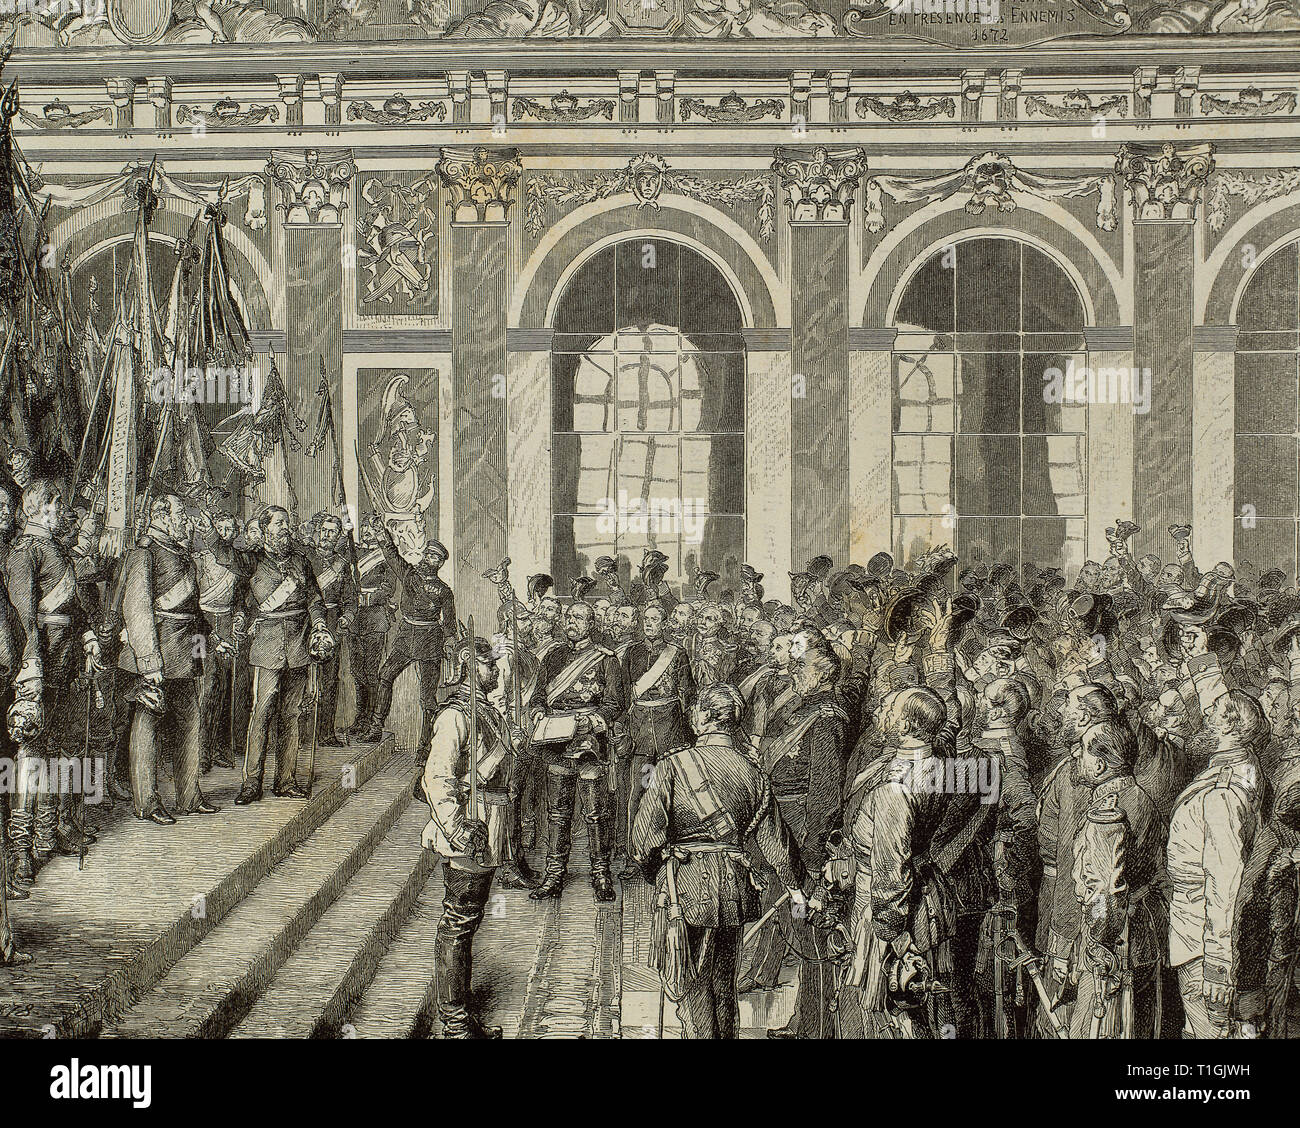 Wilhelm I (1797-1888). King of Prussia and German Emperor. Proclamation of Wilhelm I as the first German Emperor in the Hall of Mirrors of the Palace of Versailles, on January 18th, 1871. Otto von Bismarck read out the proclamation. Engraving by A. Closs. - Stock Image